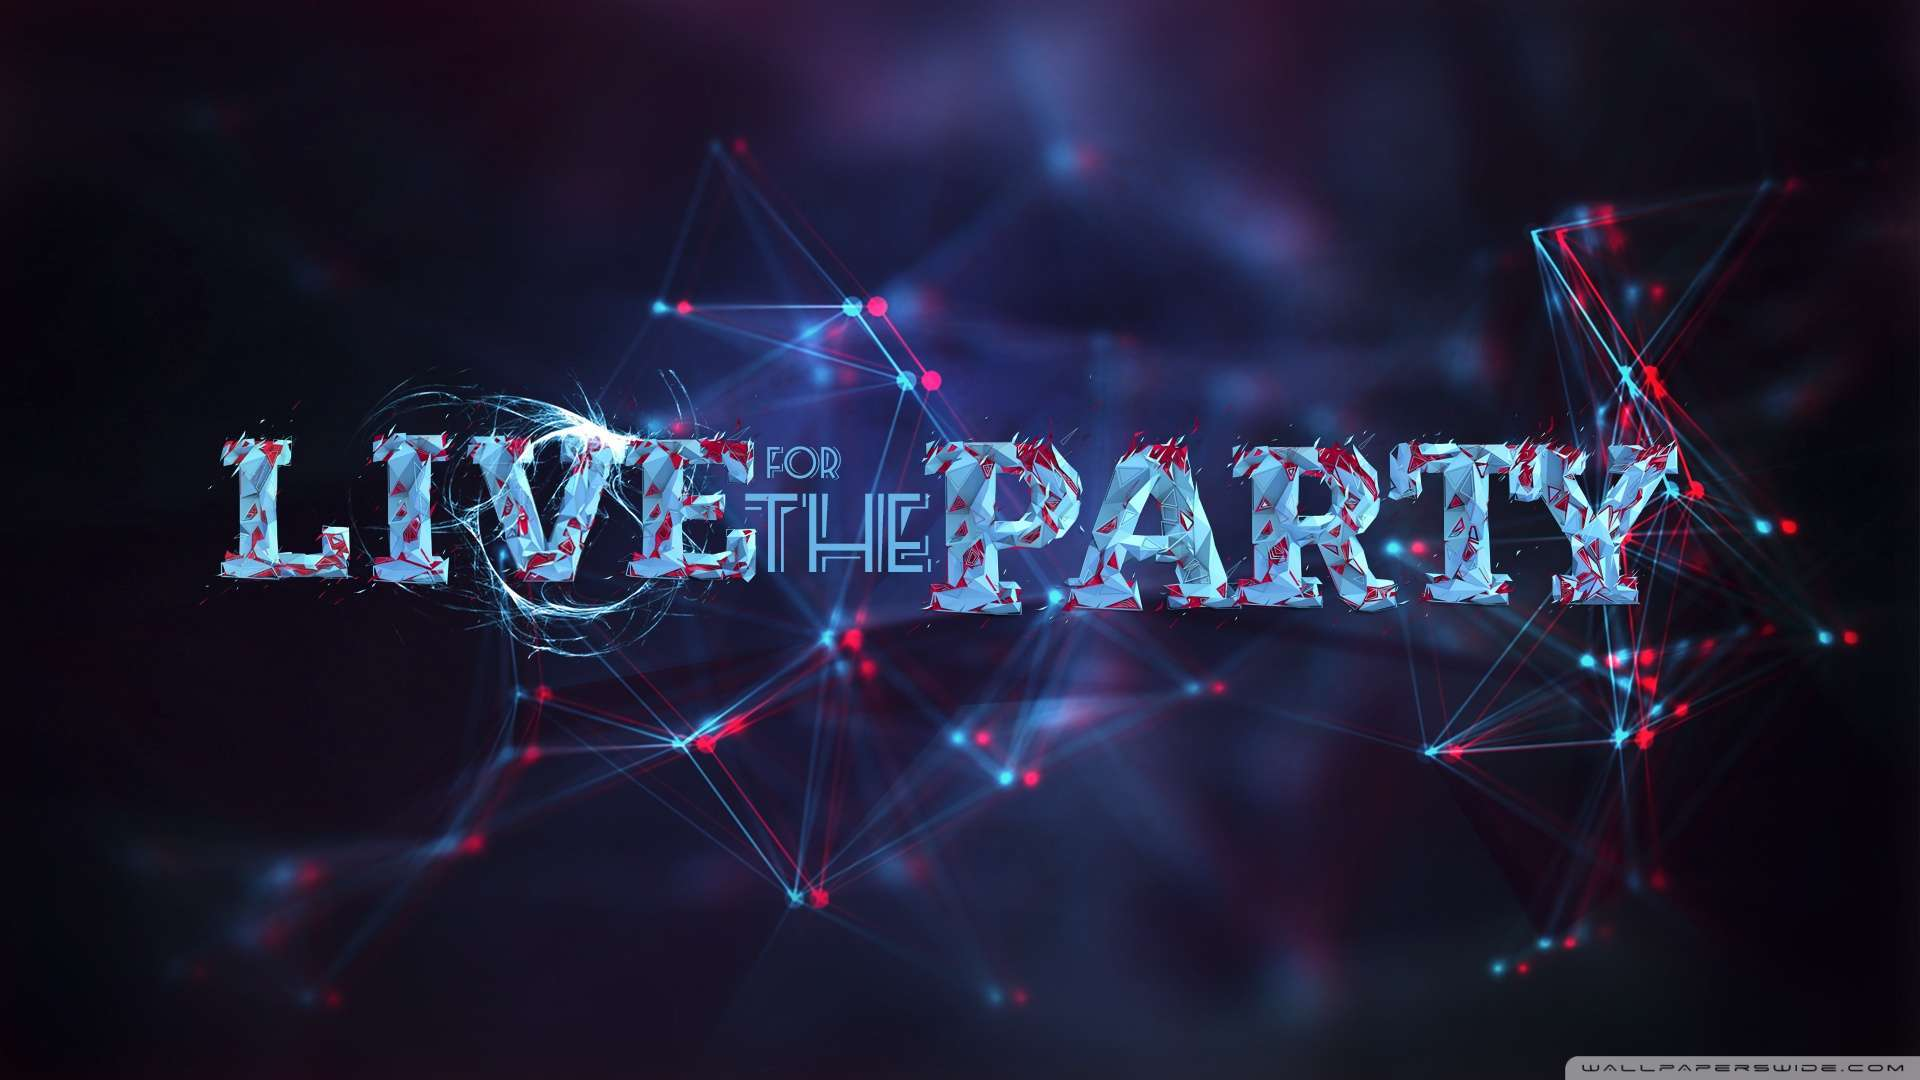 party images hd - photo #2